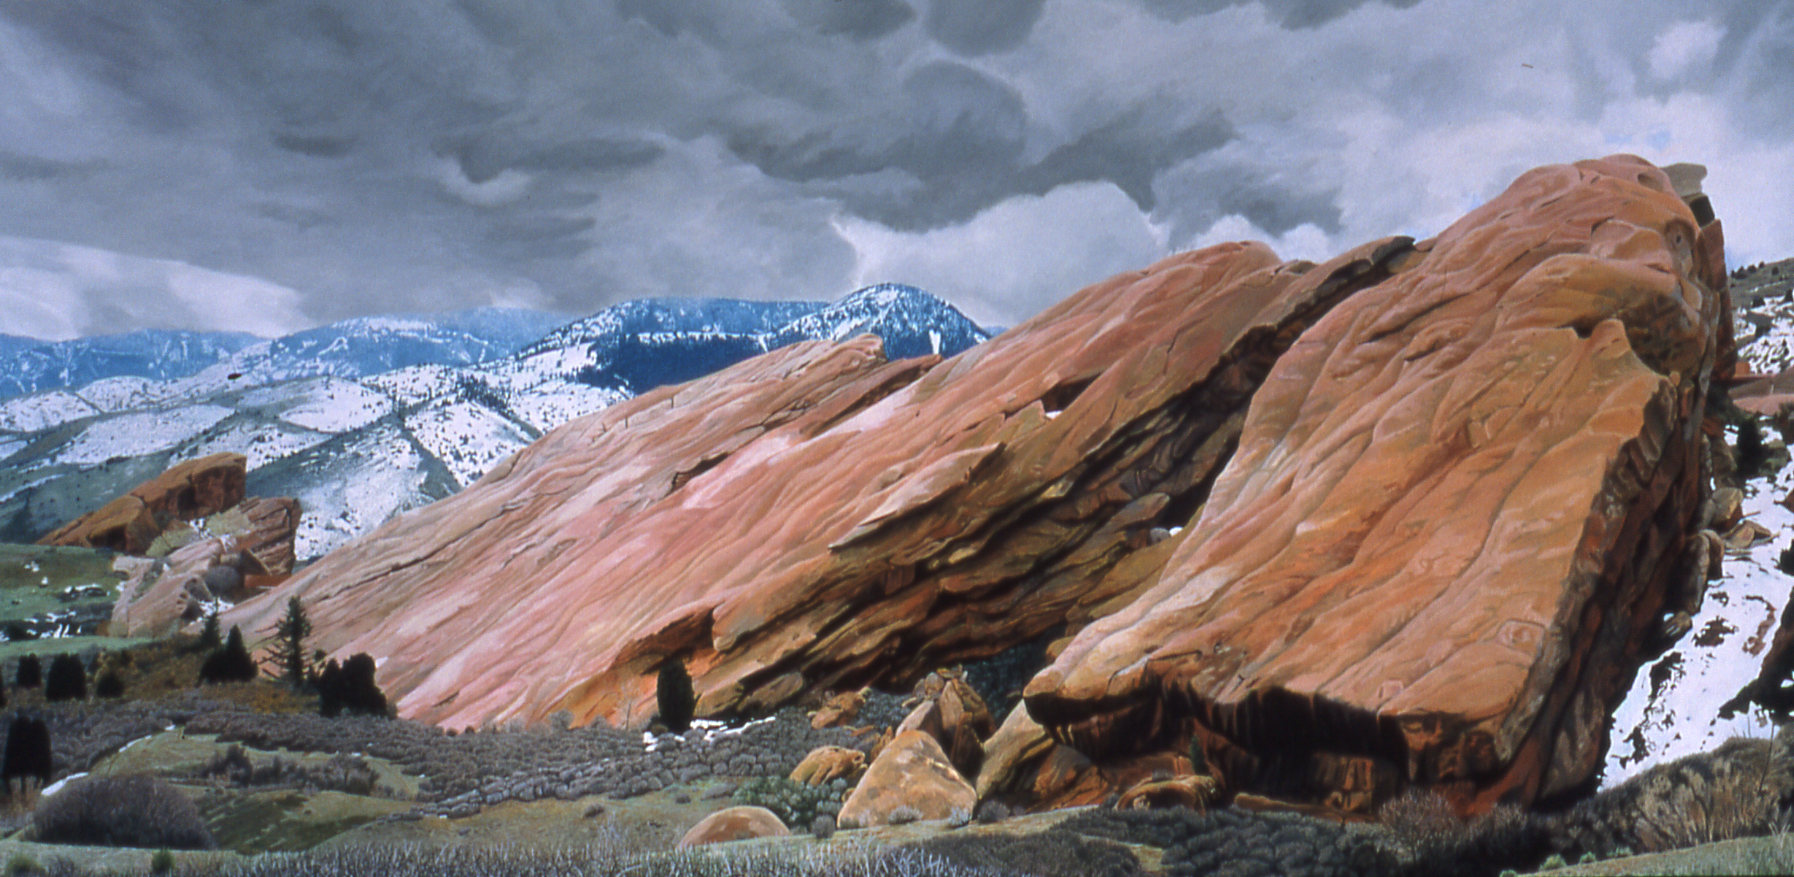 Go to the Red Rocks, Early Spring page